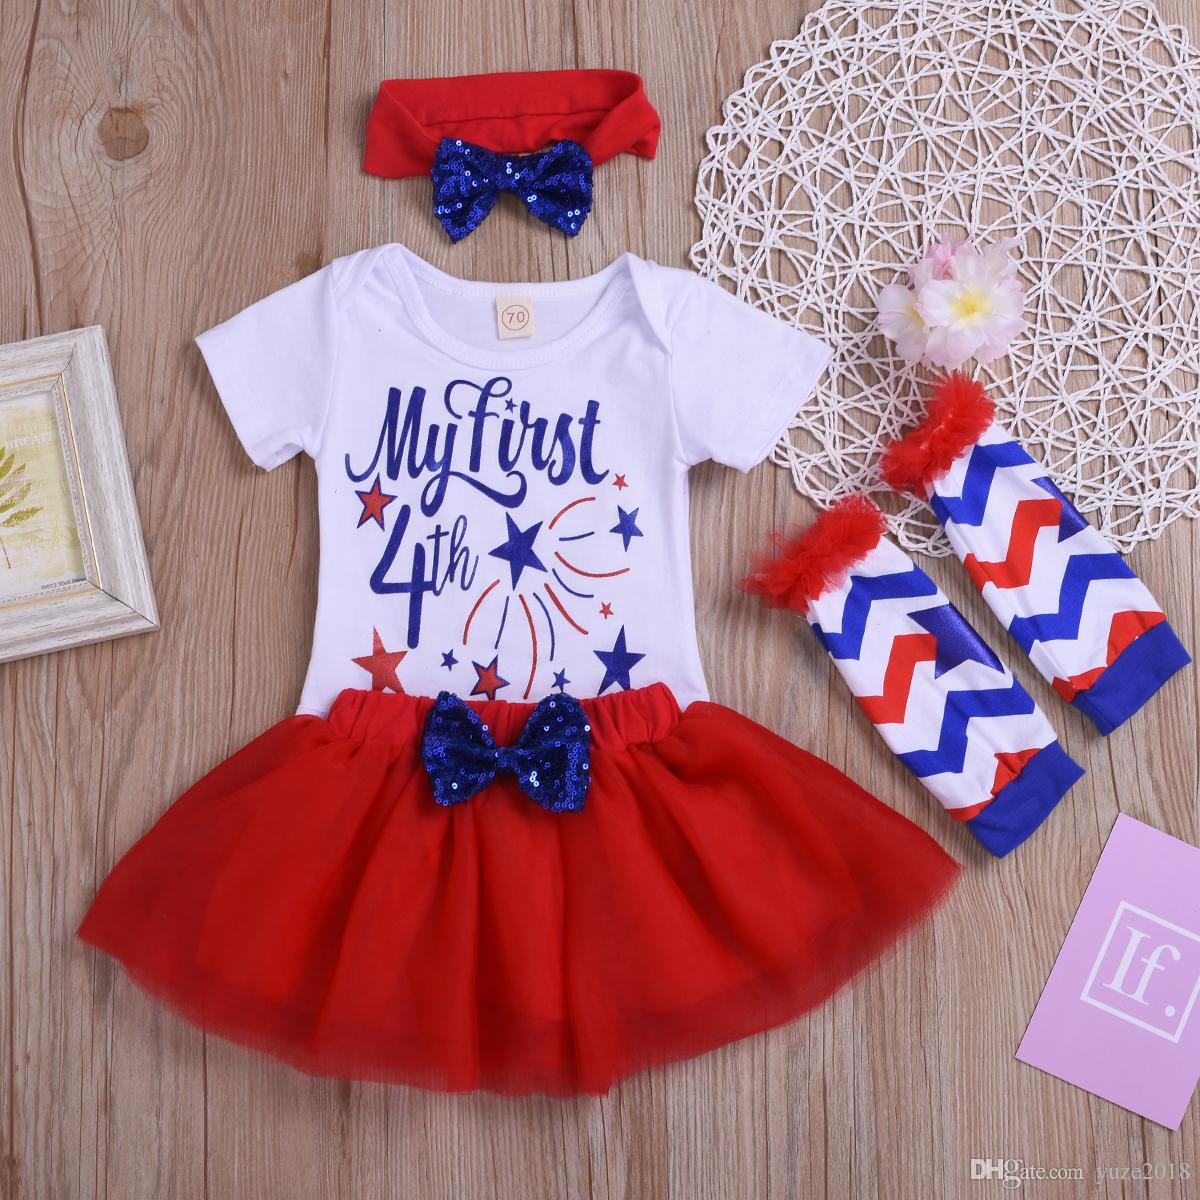 WINZIK 4th of July Baby Girl 3Pcs Tutu Skirt Outfit Set Unicorn Stars Romper Bodysuit Independence Day Garment Party Costume